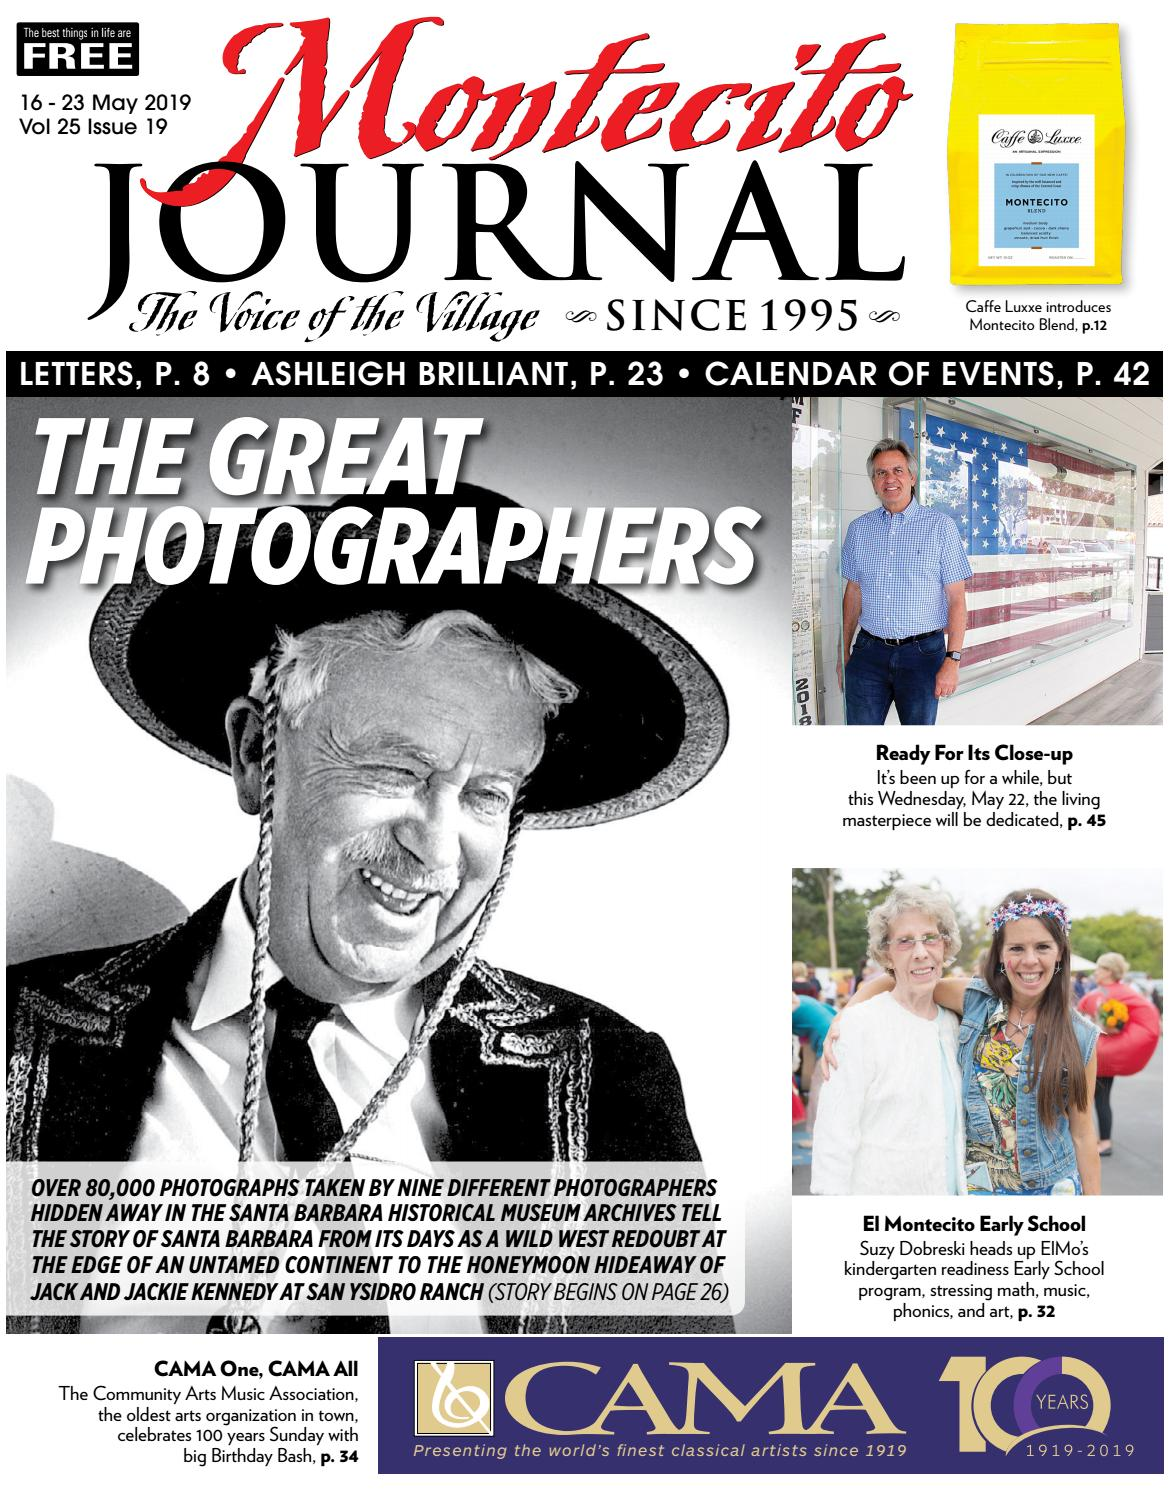 The Great Photographers by Montecito Journal - issuu